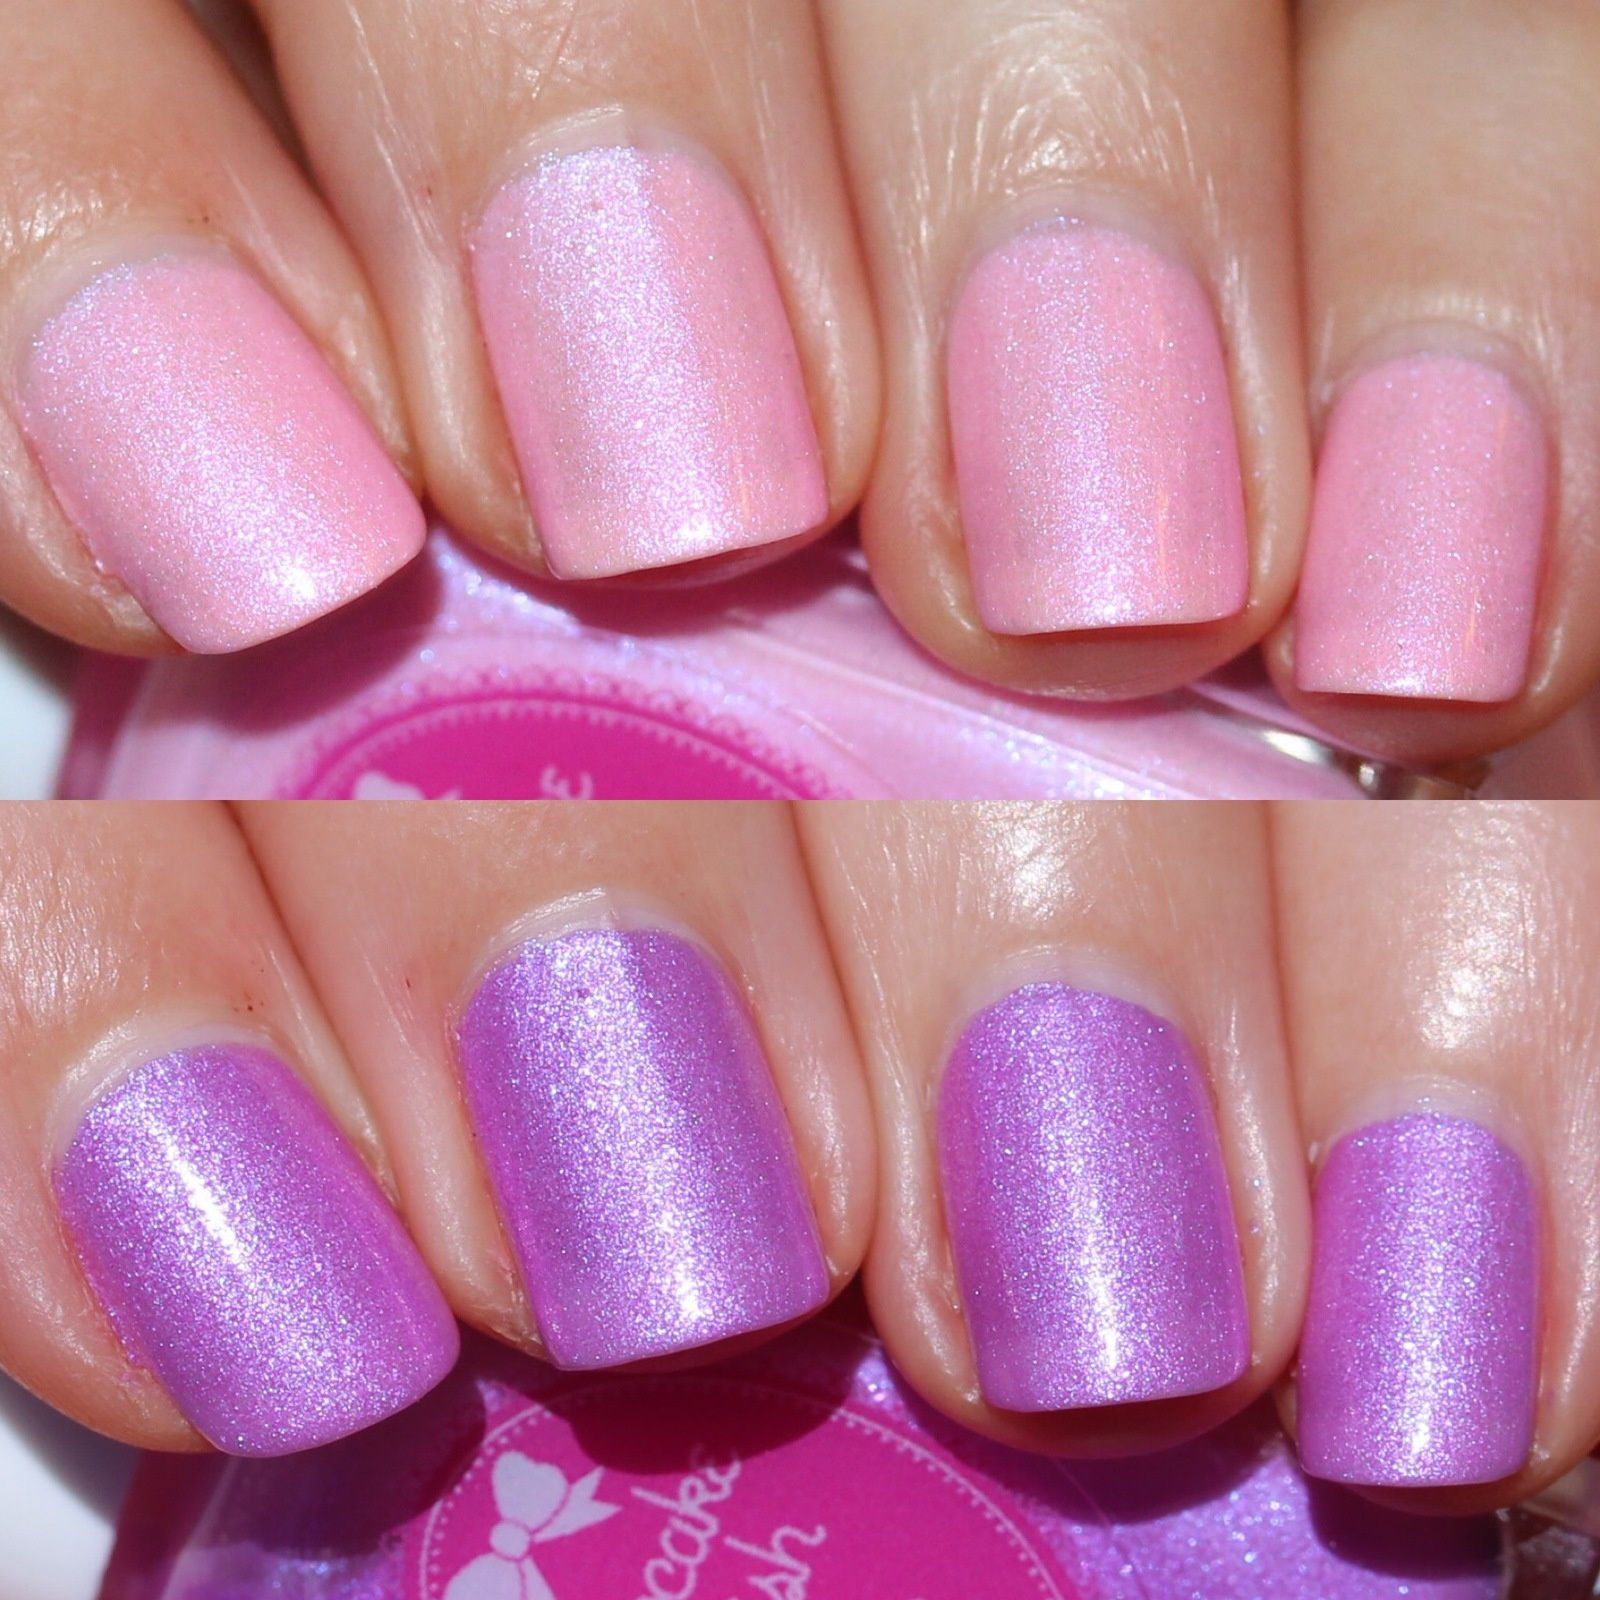 Essie Protein Base Coat / Cupcake Polish I Scream for Ice Cream / Essie Gel Top Coat